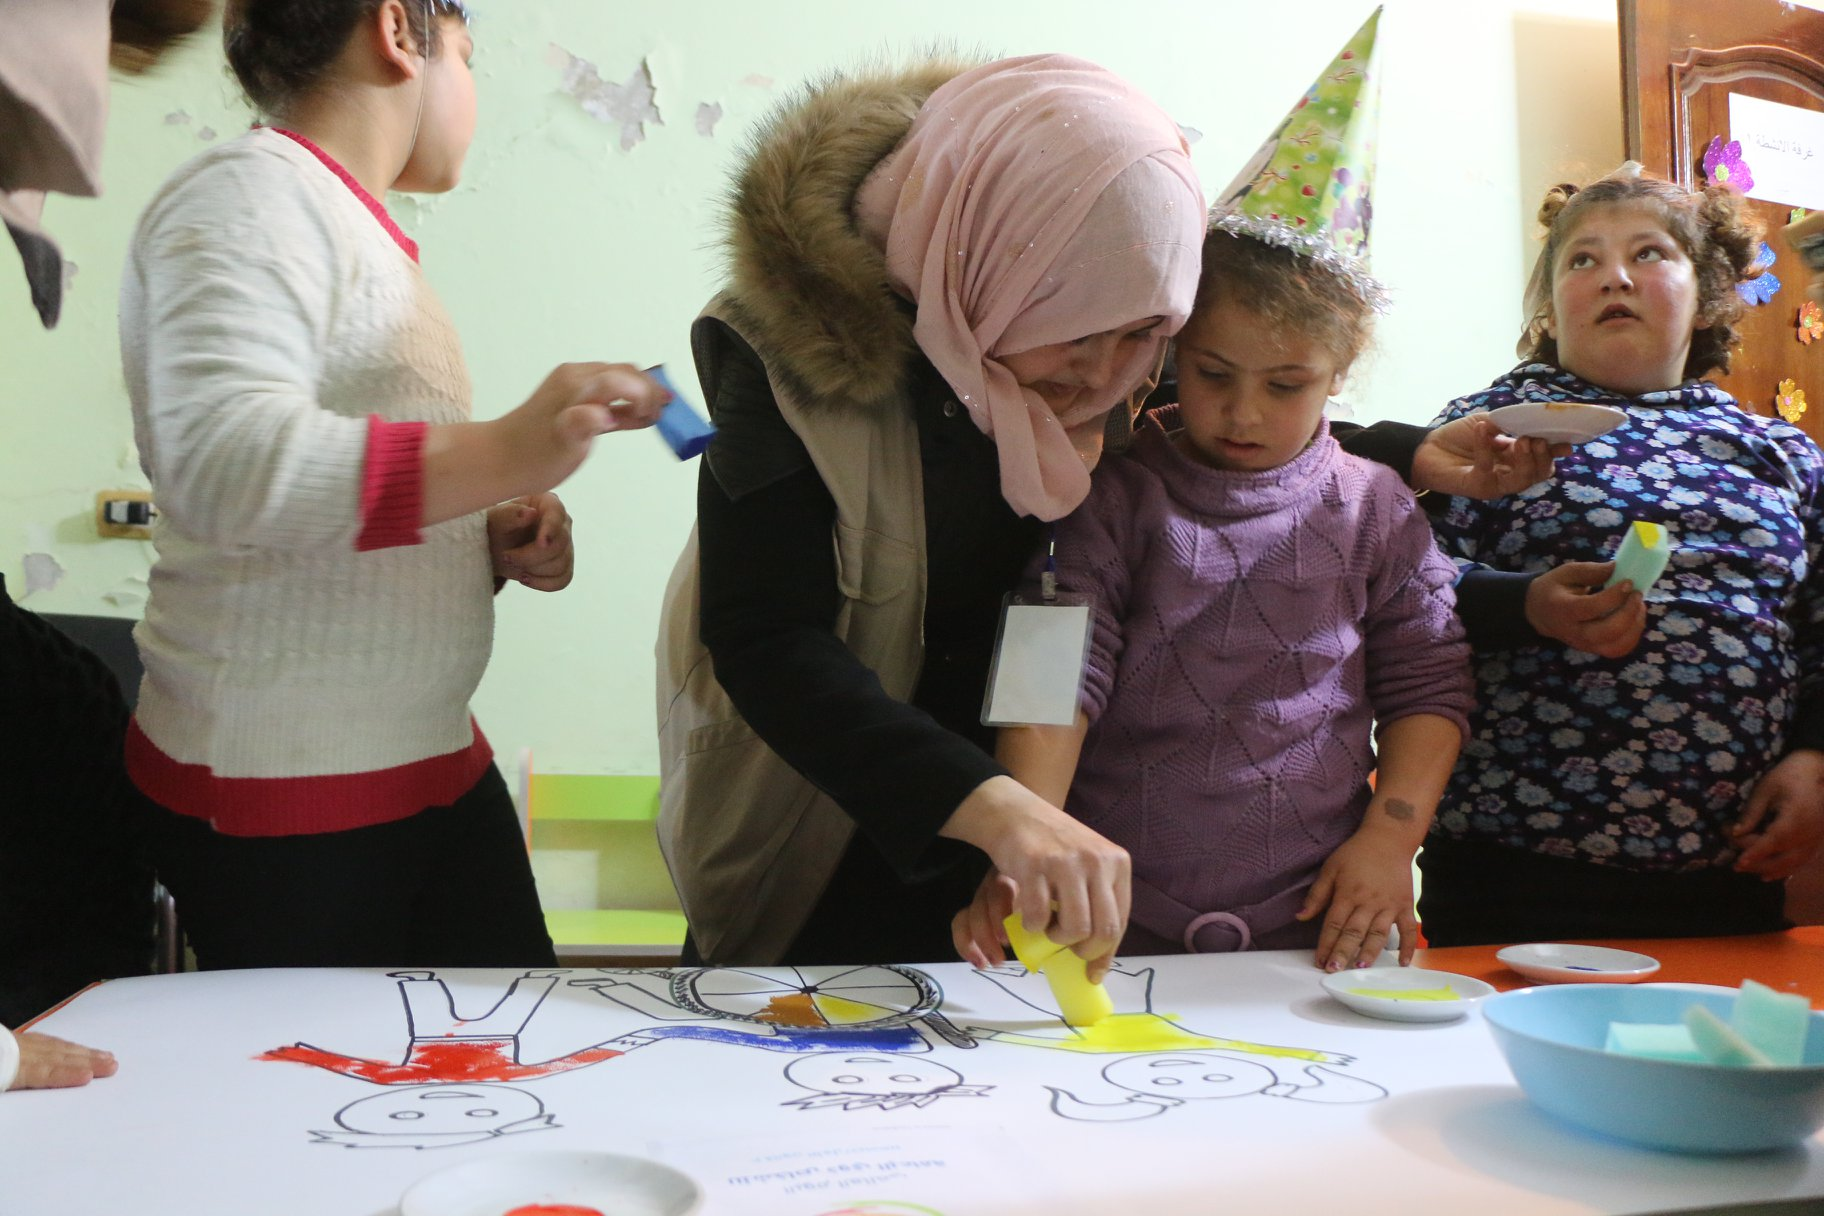 Activities for children with special needs in Idlib Governorate - December 2019 (UOSSM)